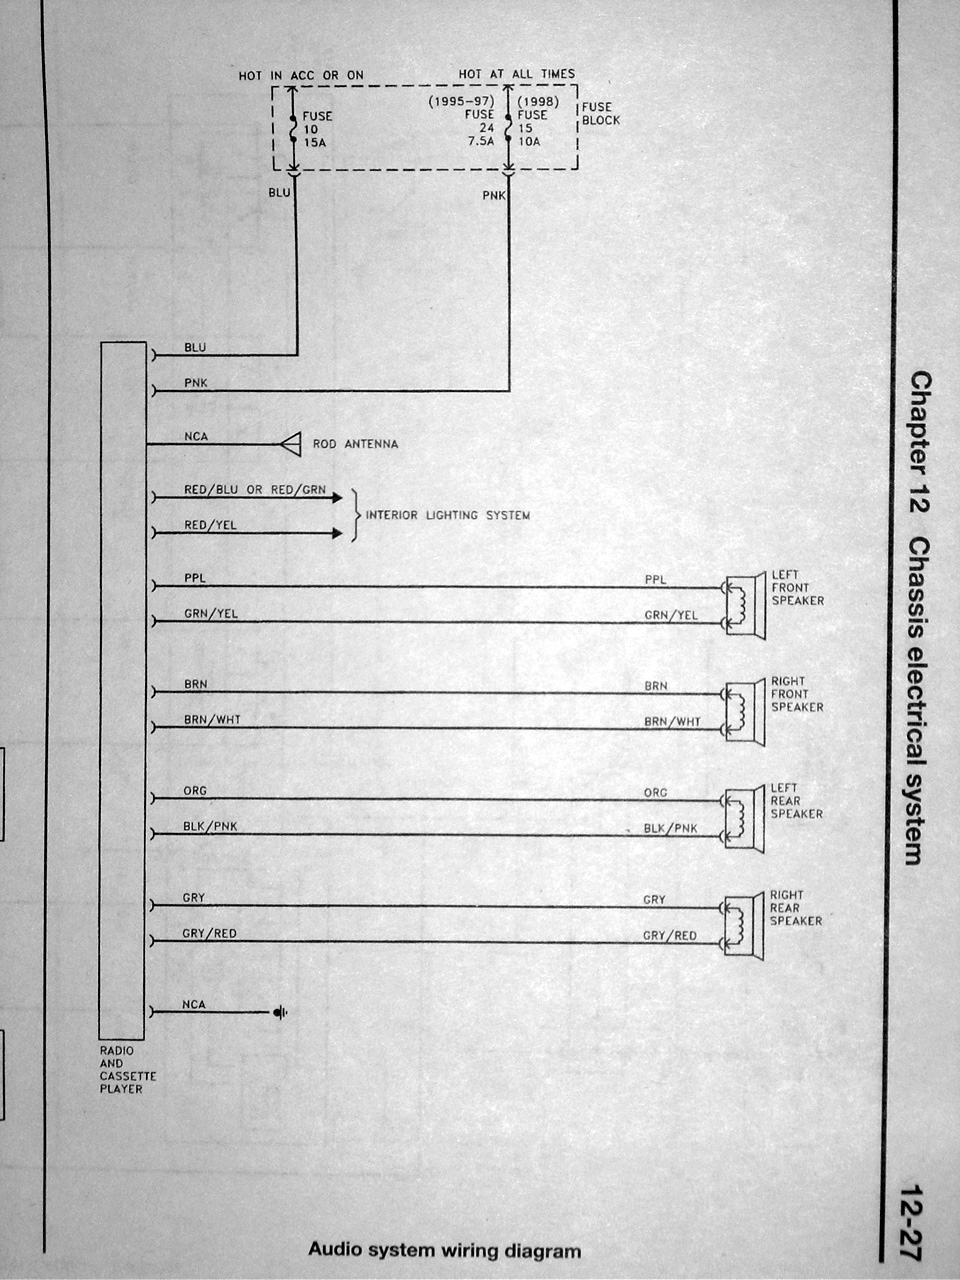 DSC01849 wiring diagram thread *useful info* nissan forum Pathfinder 94 Window Seals at cos-gaming.co